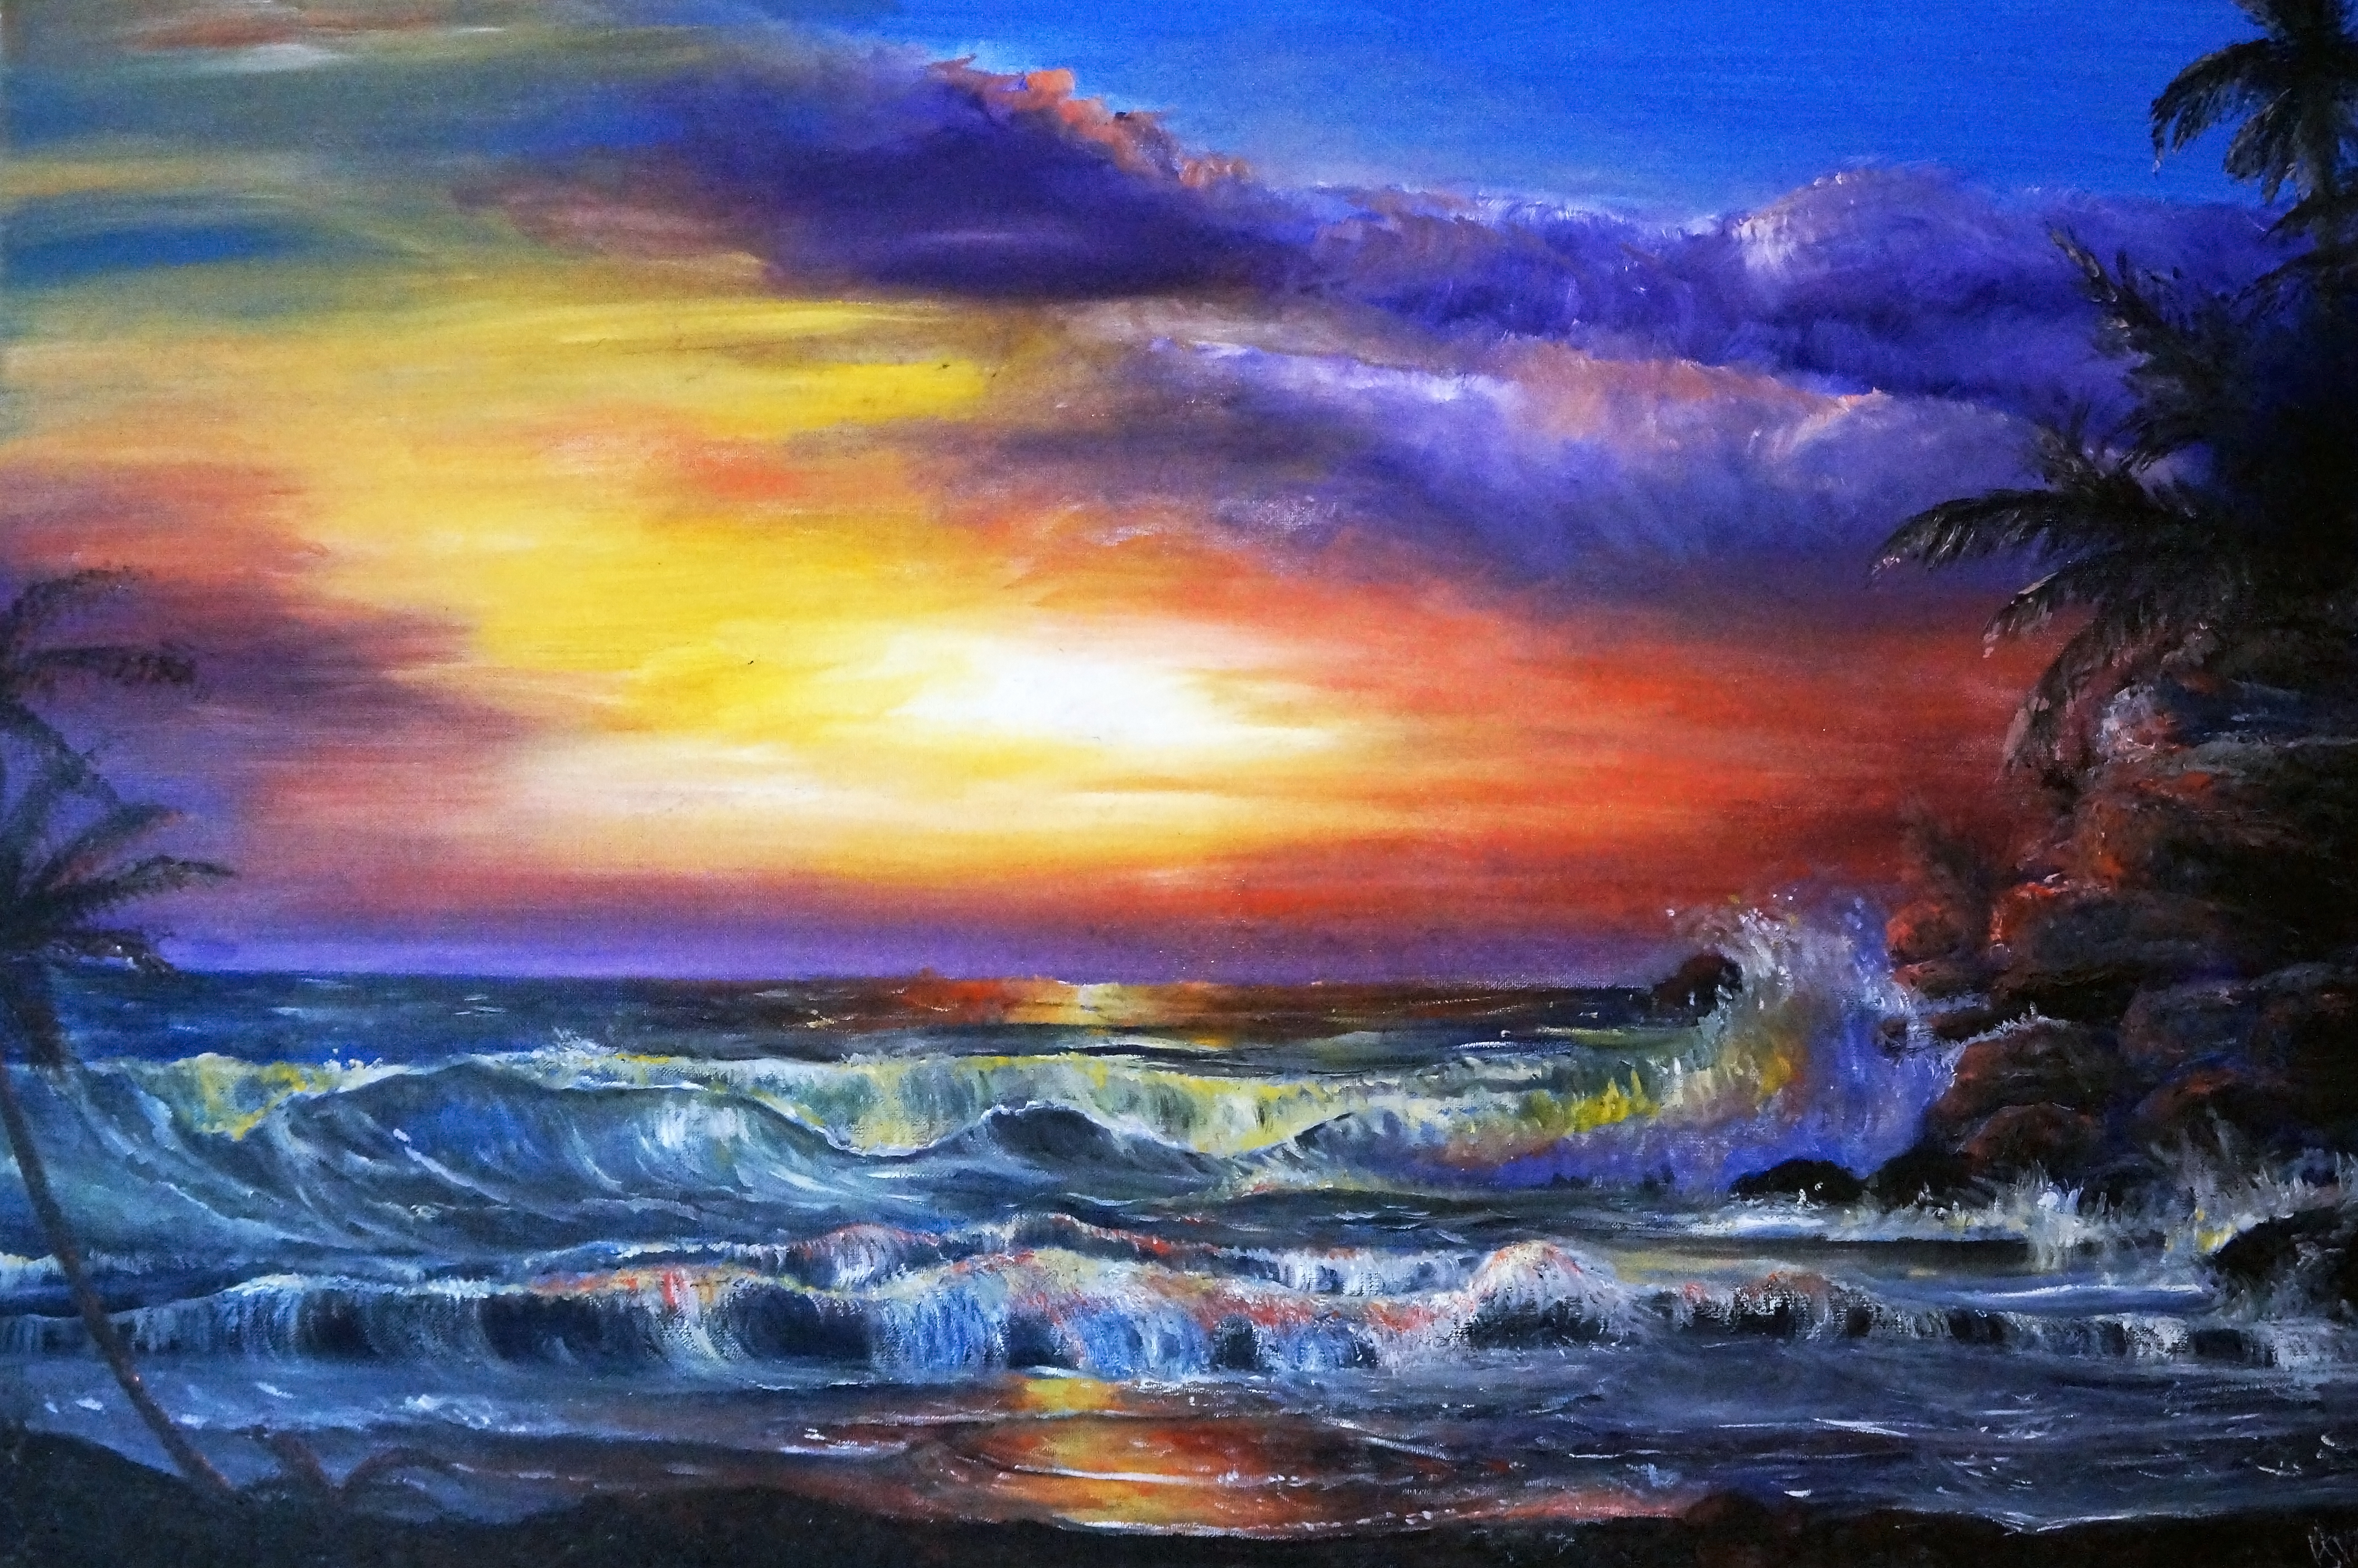 Beach Sunset painting by Britnie